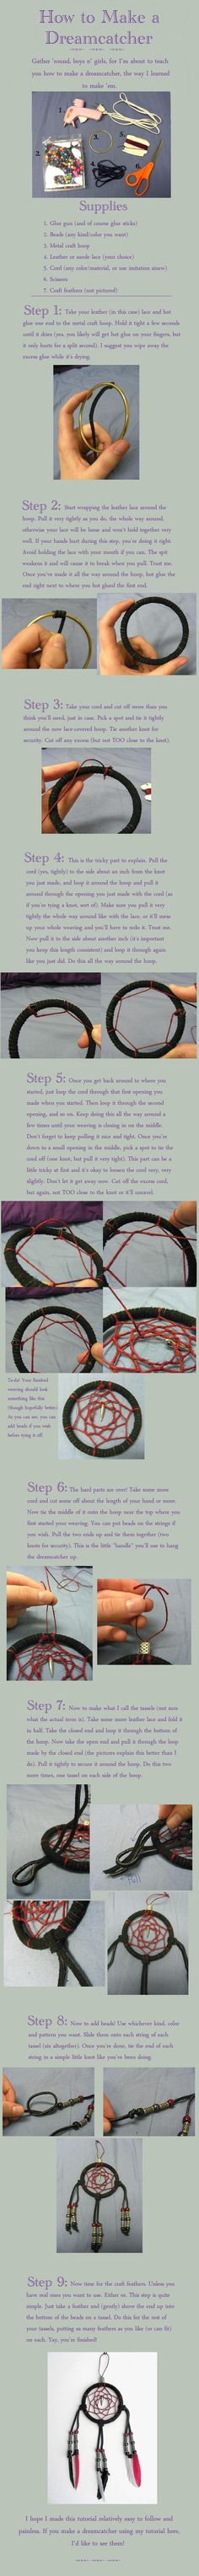 How to Make a Dreamcatcher by ~ShinimegamiSky on deviantART